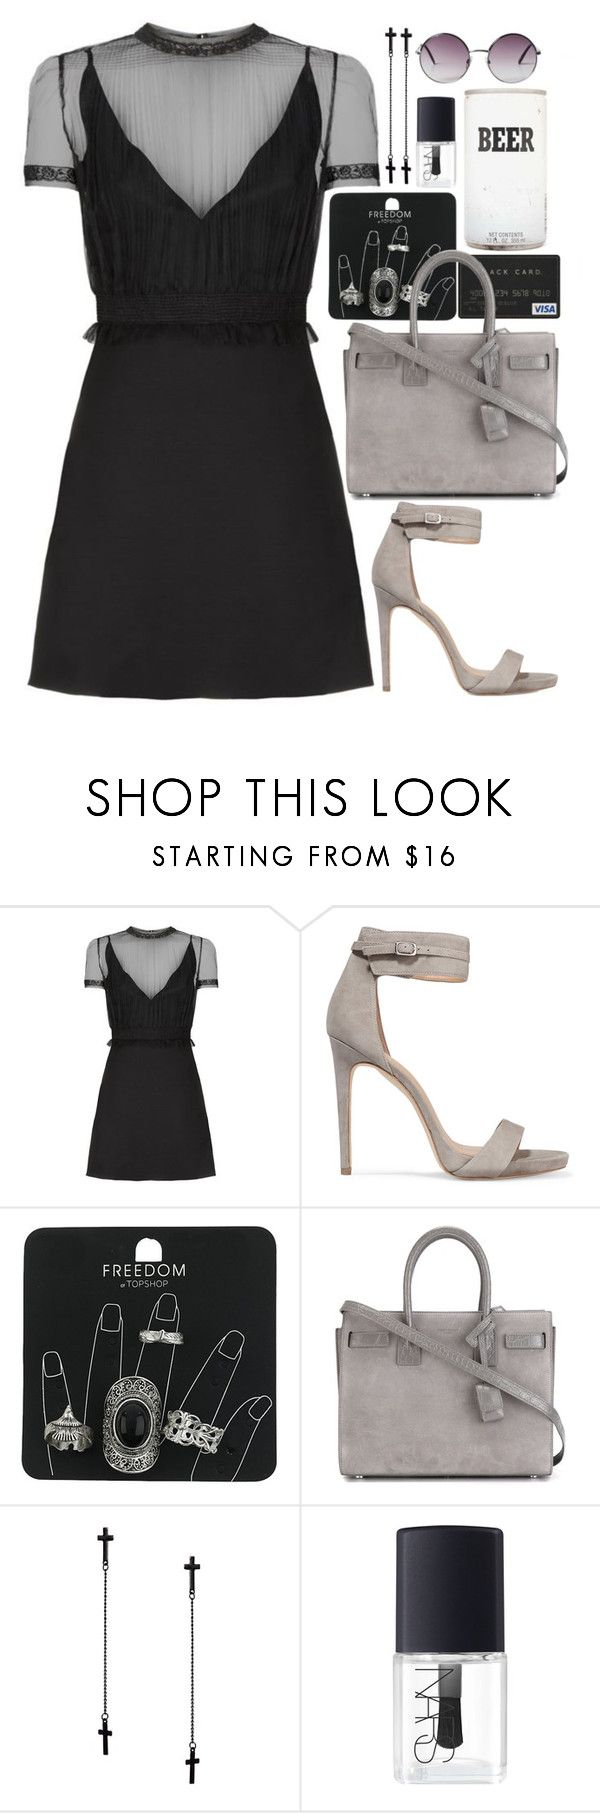 """Little Black Dress"" by littlebigtown-718 ❤ liked on Polyvore featuring Valentino, Halston Heritage, Topshop, Yves Saint Laurent, Ashiana, NARS Cosmetics, Monki, LittleBlackDress, LBD and Fall2016"